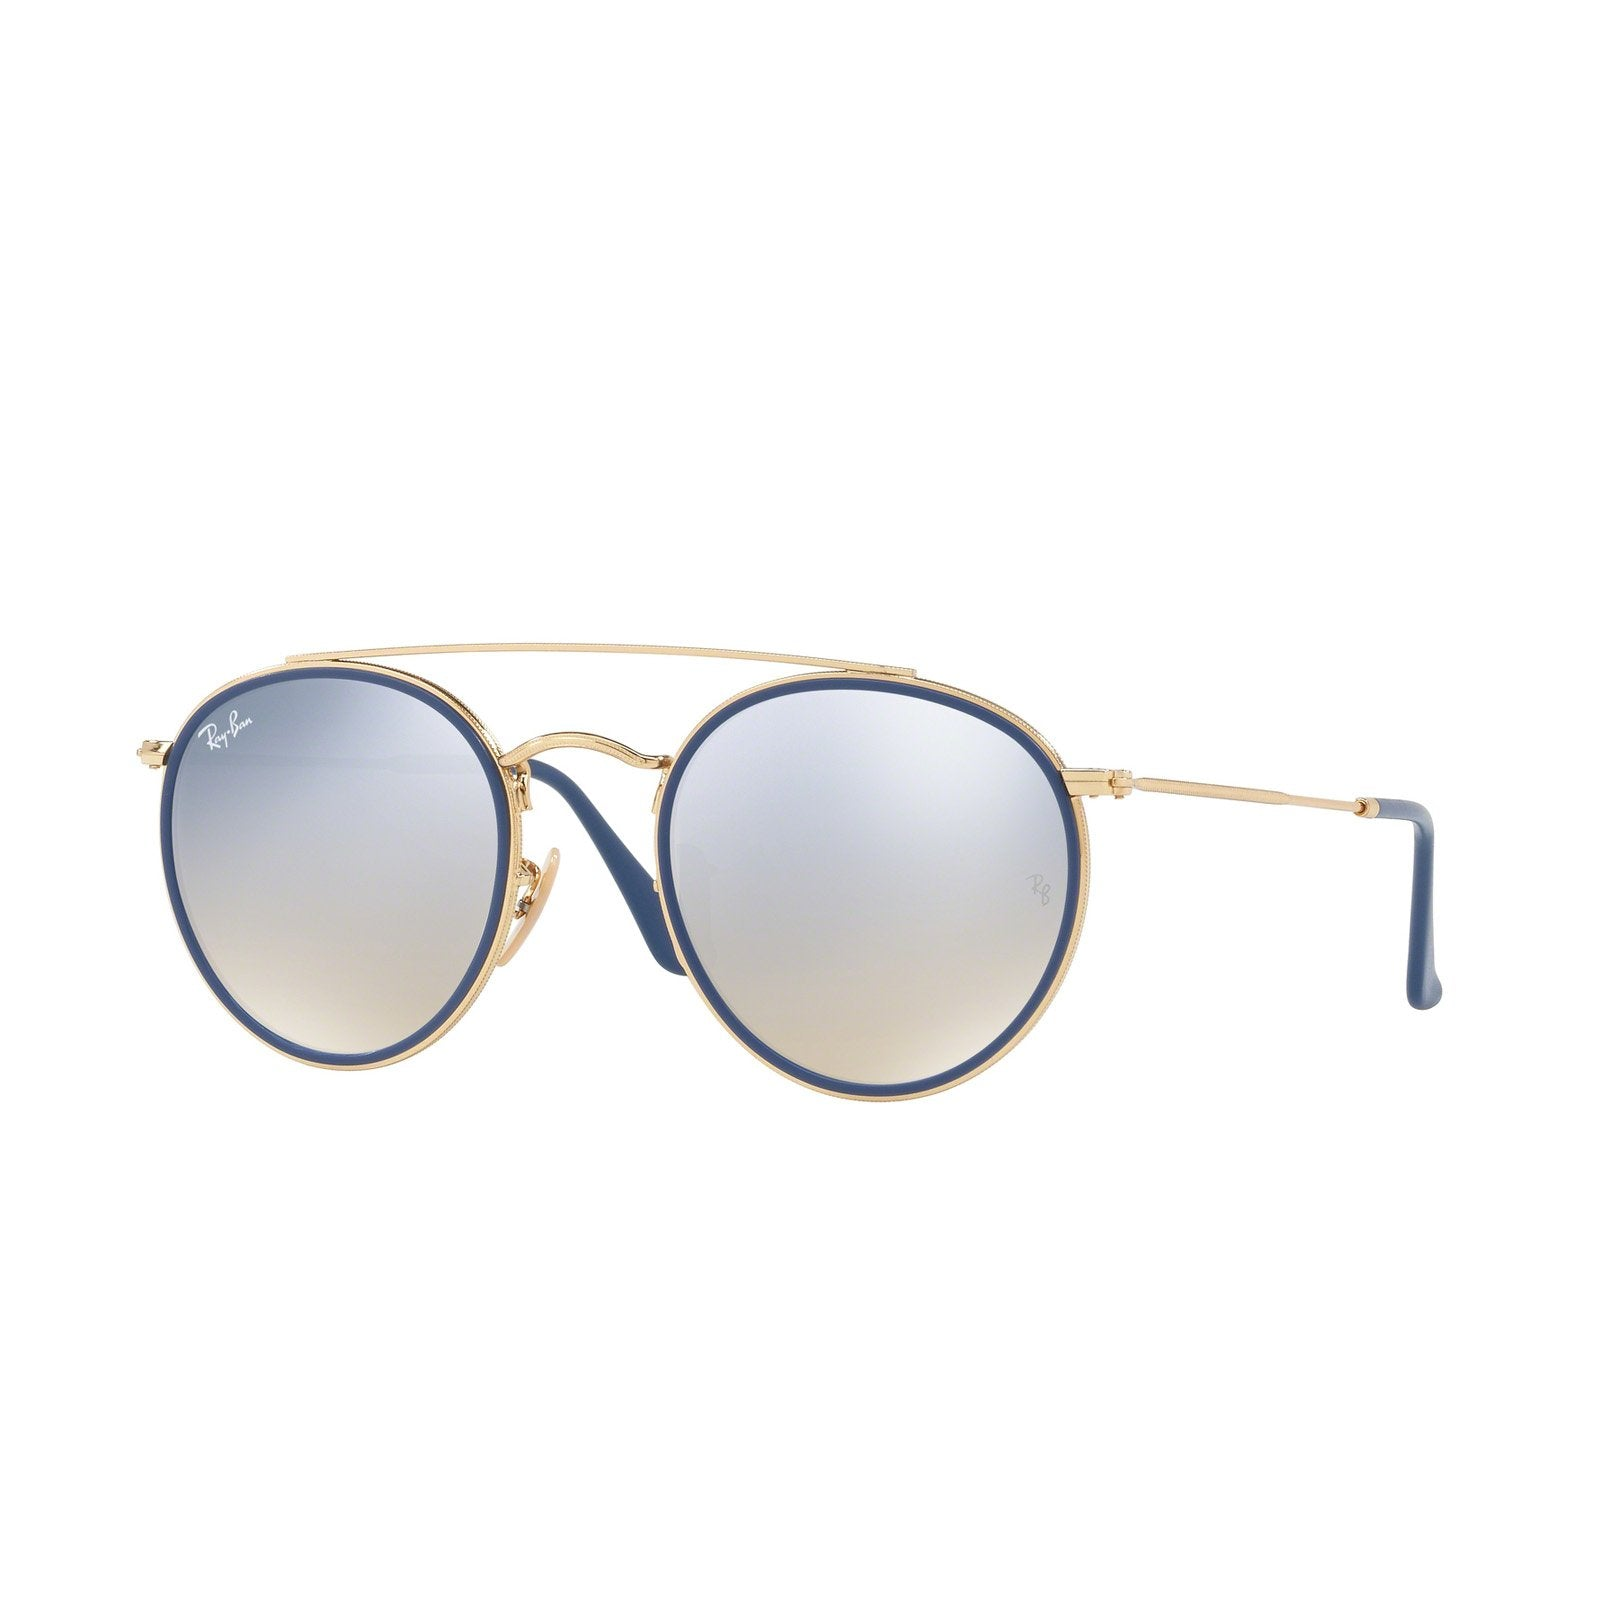 Ray-Ban RB3647N 001/9U Sunglasses